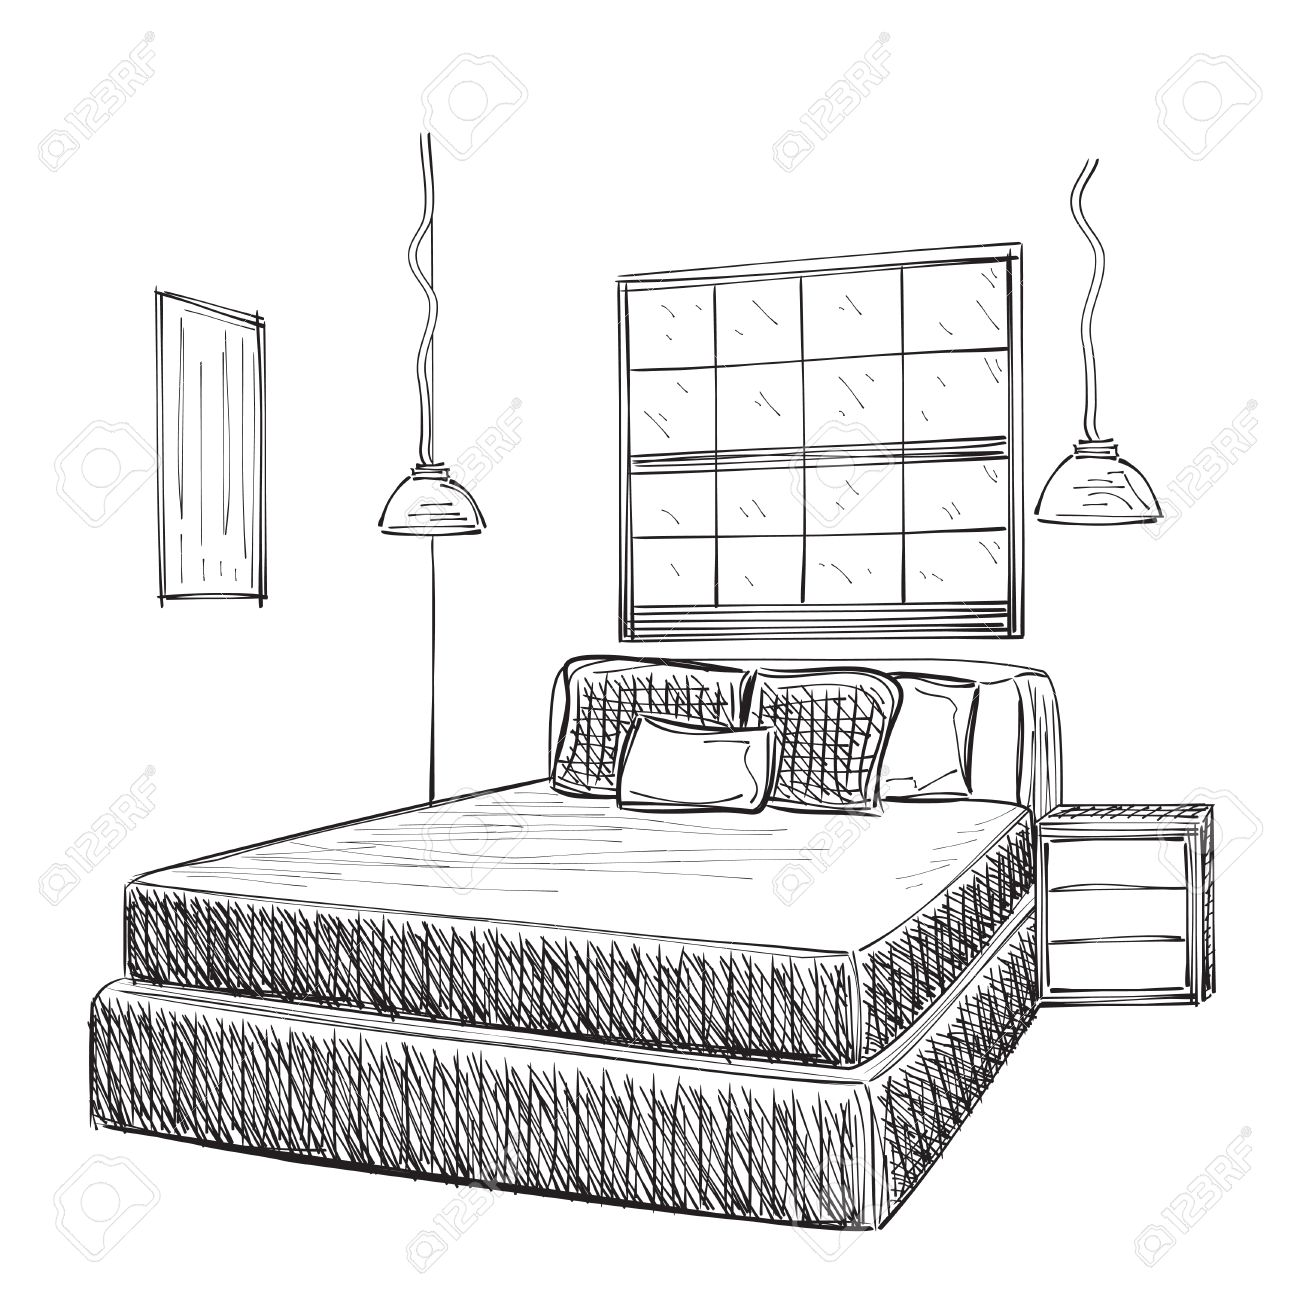 Bedroom drawing for kids - Bedroom Modern Interior Vector Drawing Isolated On White Background Stock Vector 49238169 Bedroom Modern Interior